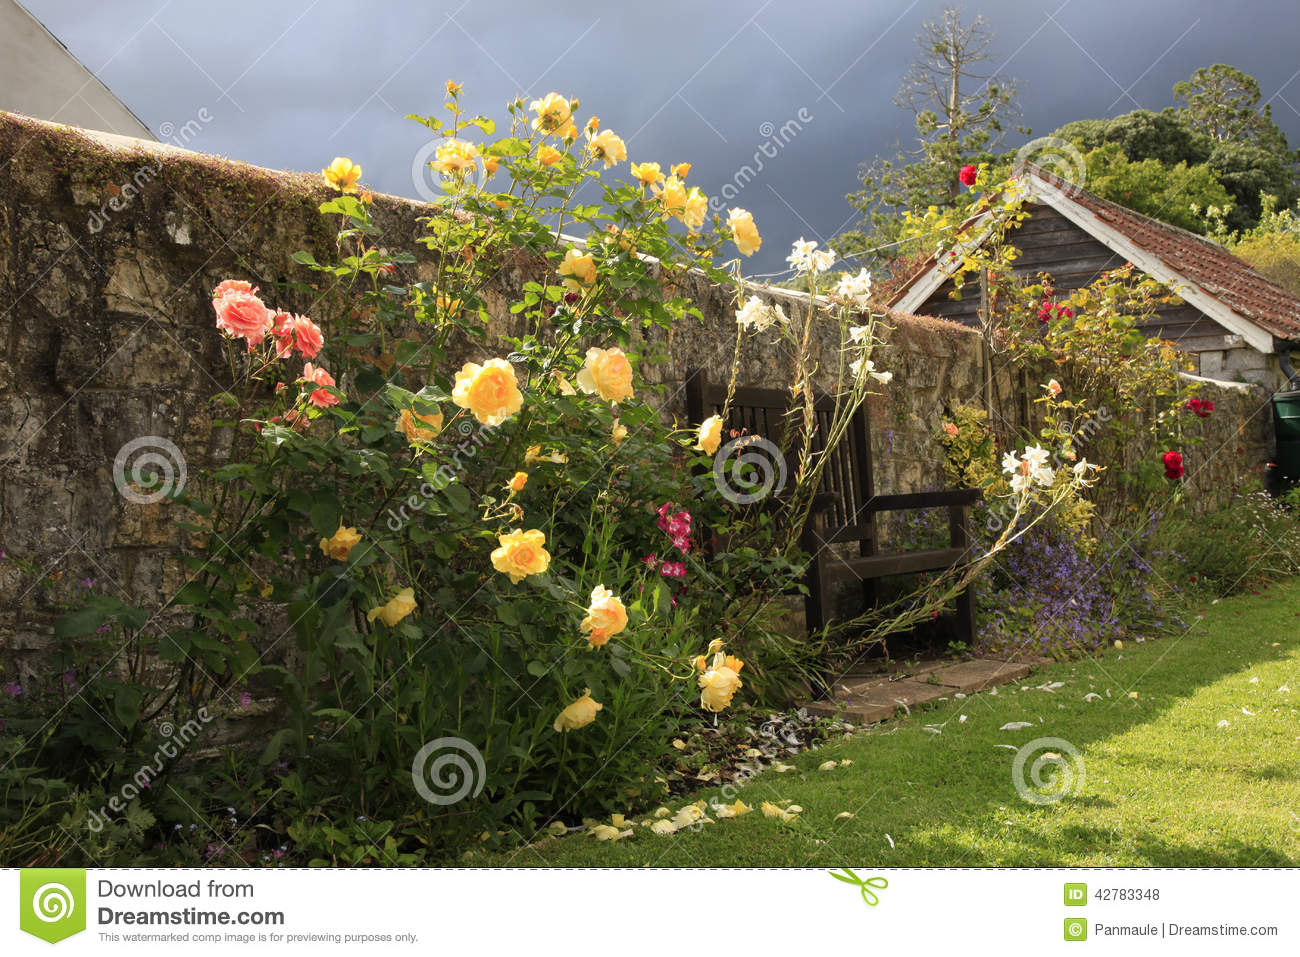 jardim rosas amarelas:English Garden with Yellow Roses